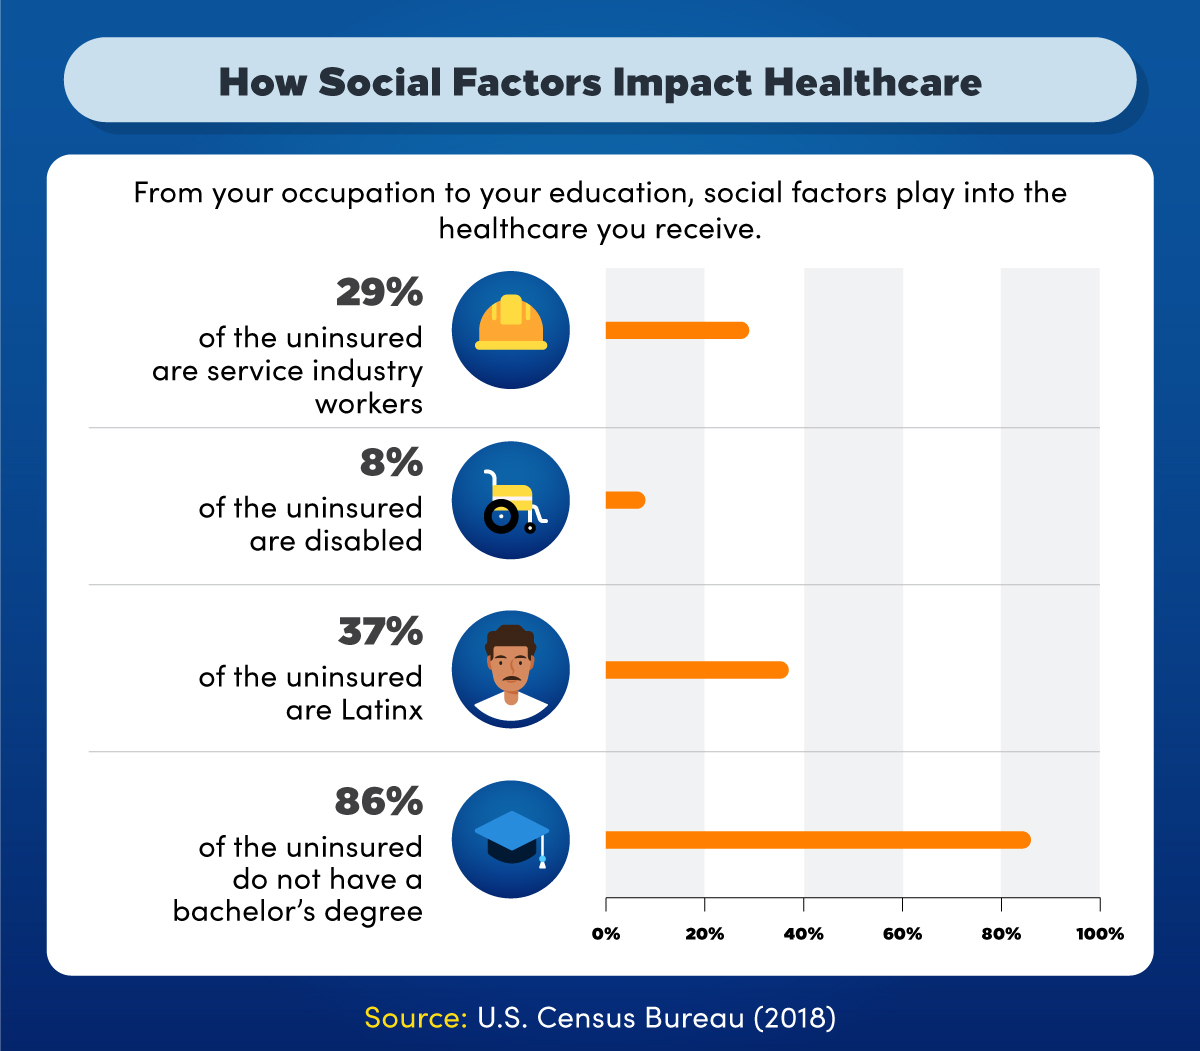 Social factors that impact health insurance coverage include occupation, disability, race, and education.